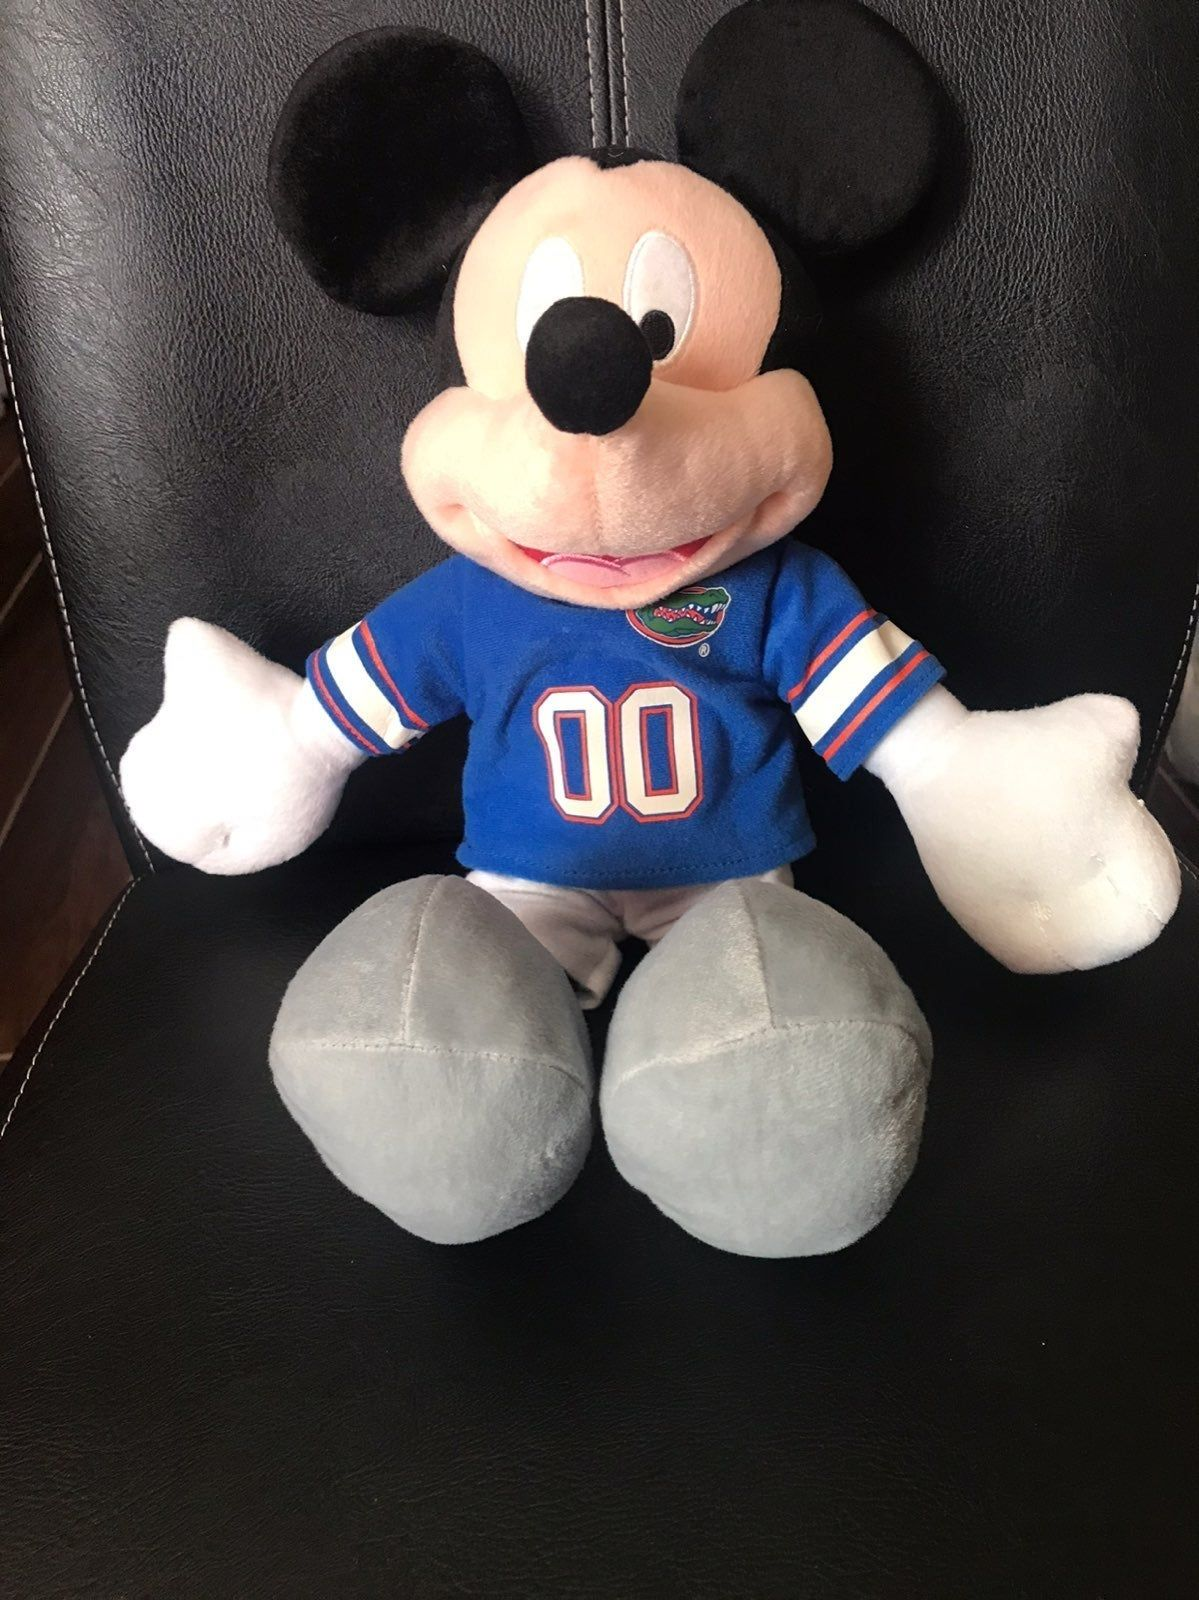 Predownload: Mickey Mouse Disney Like New Condition Smoke And Pet Free Home Kids Souvenir Toys Children Parenting Baby Babies Disney Stuffed Animals Mickey Mouse Mickey [ 1600 x 1199 Pixel ]